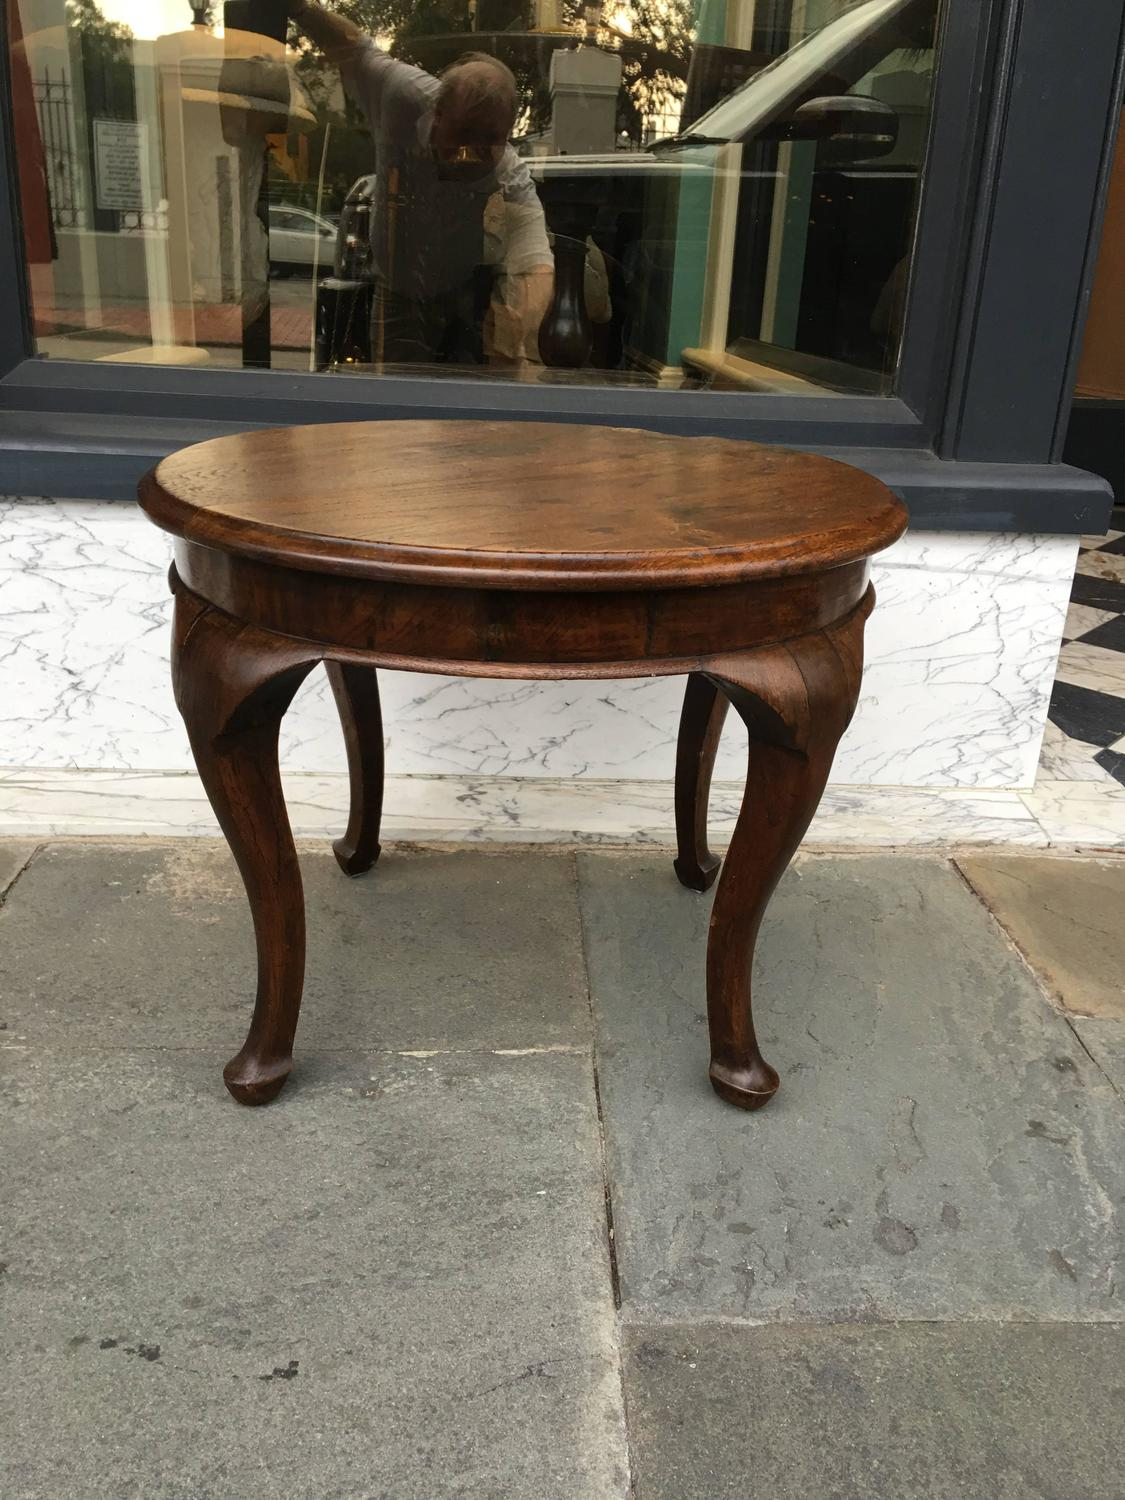 Small Oak Cocktail Table With Queen Anne Style Leg And Foot For Sale At 1stdibs